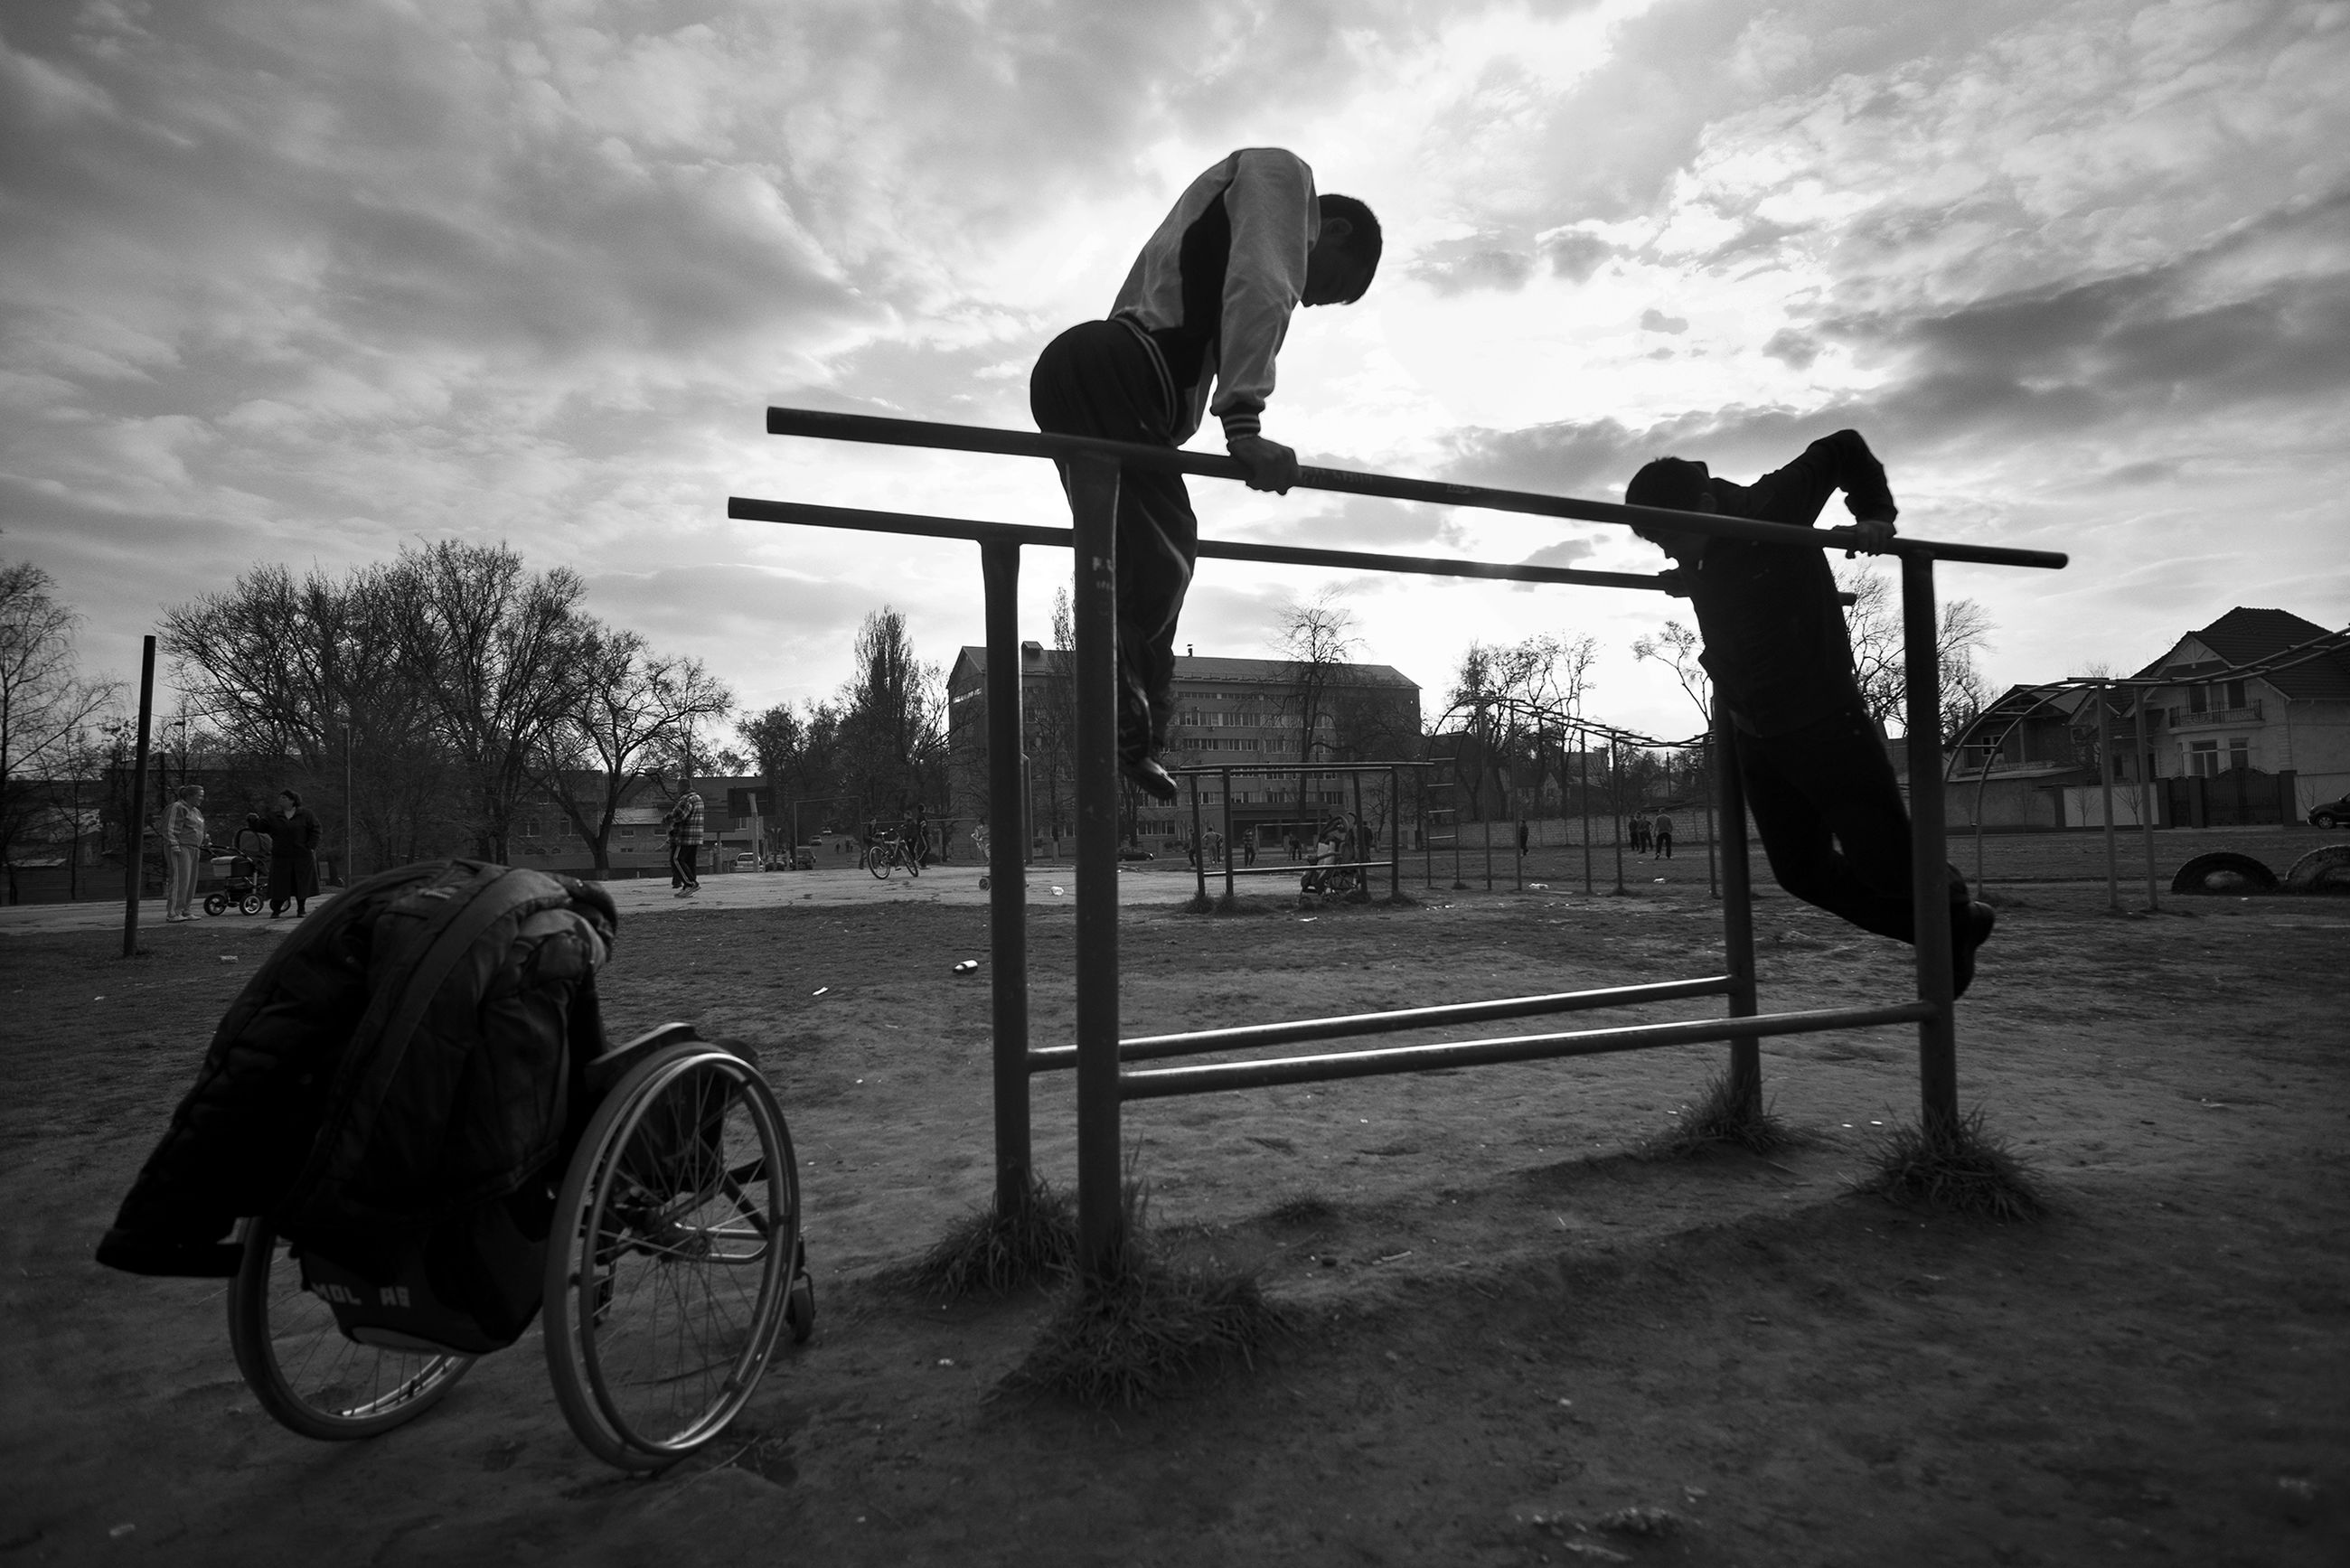 sky, cloud - sky, real people, day, men, outdoors, transportation, tree, wheelchair, full length, one person, architecture, people